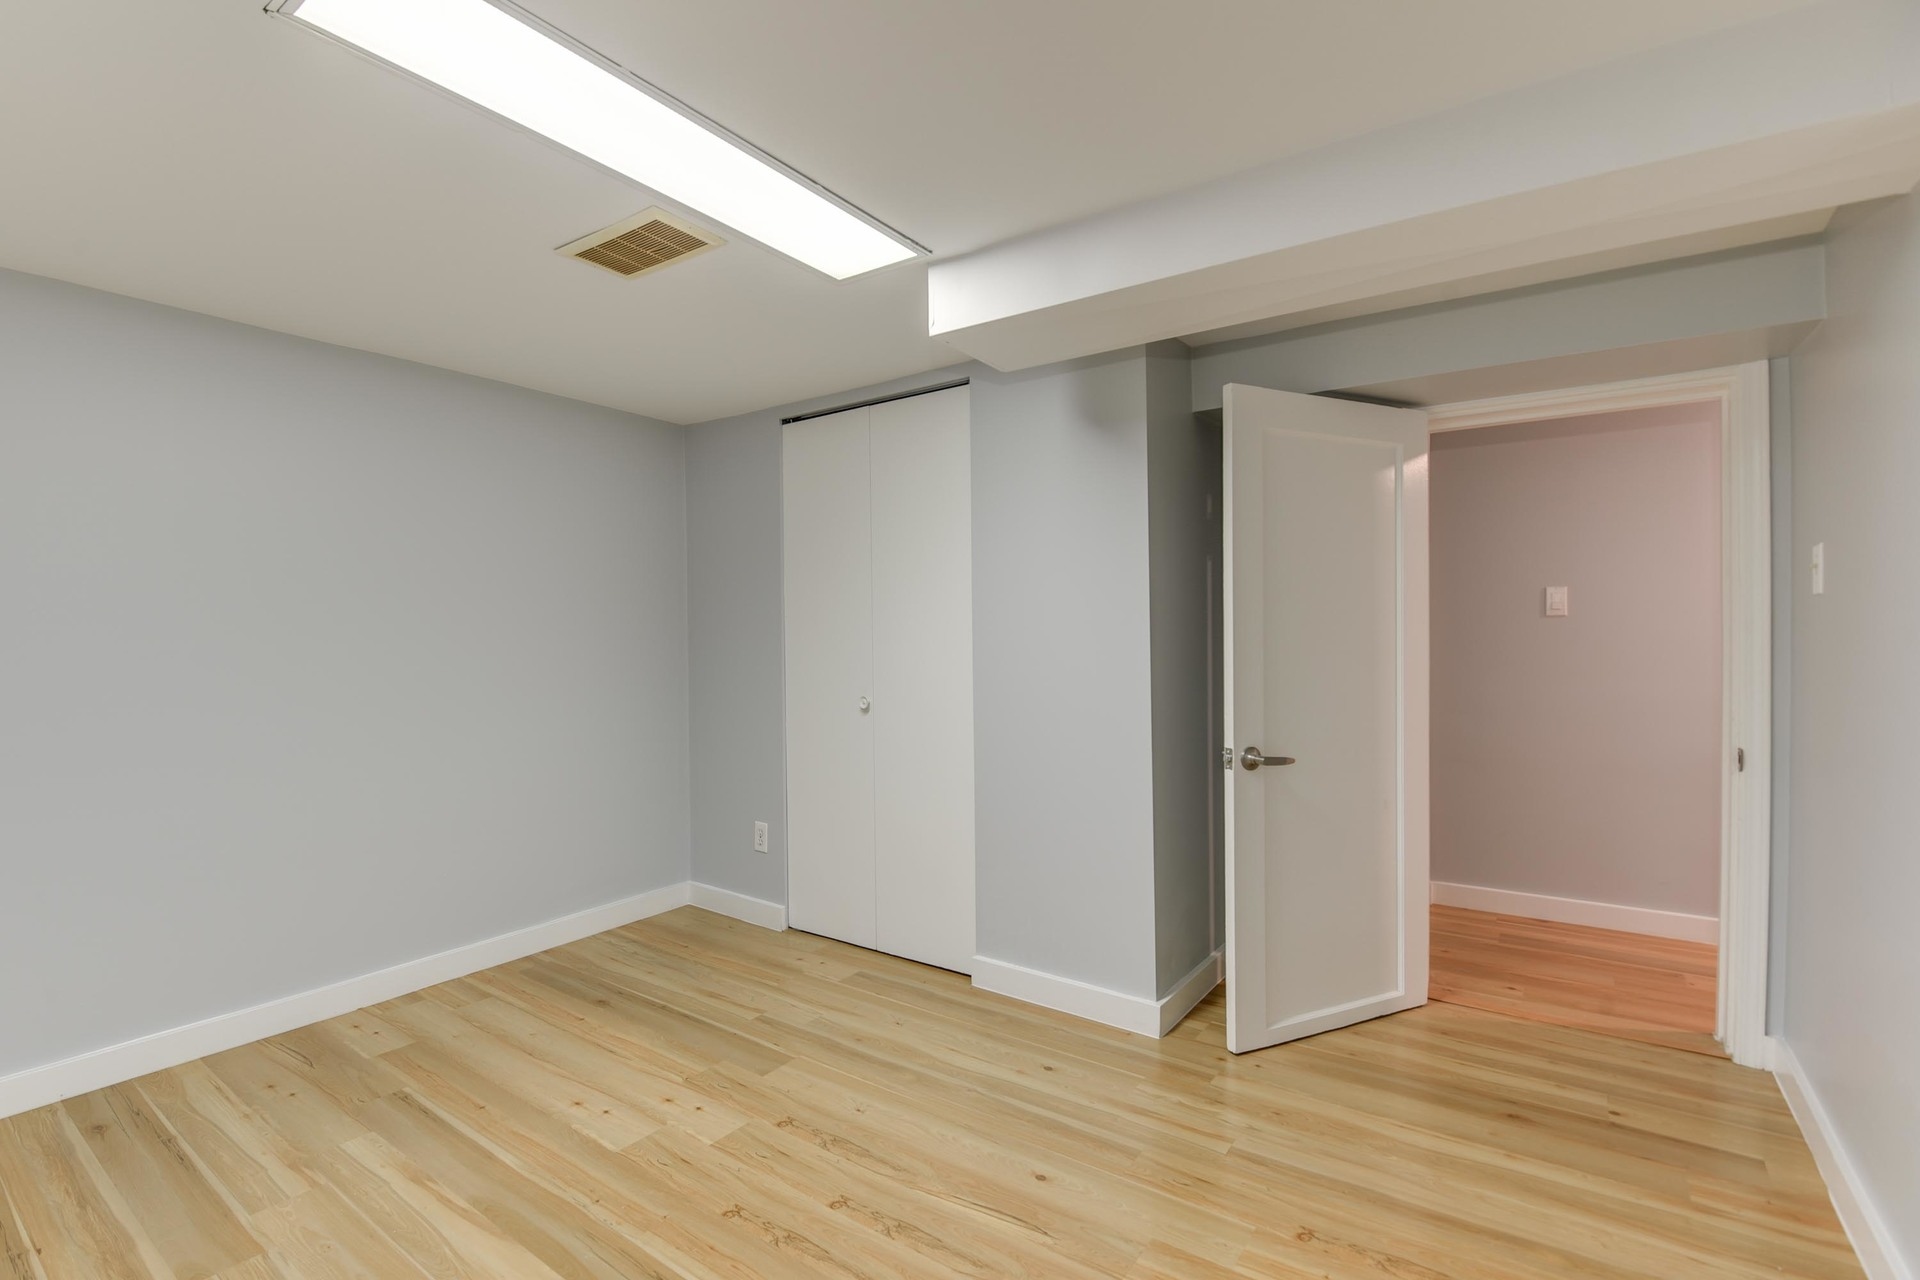 20-1-of-1 at 1285 East 18th Avenue, Knight, Vancouver East